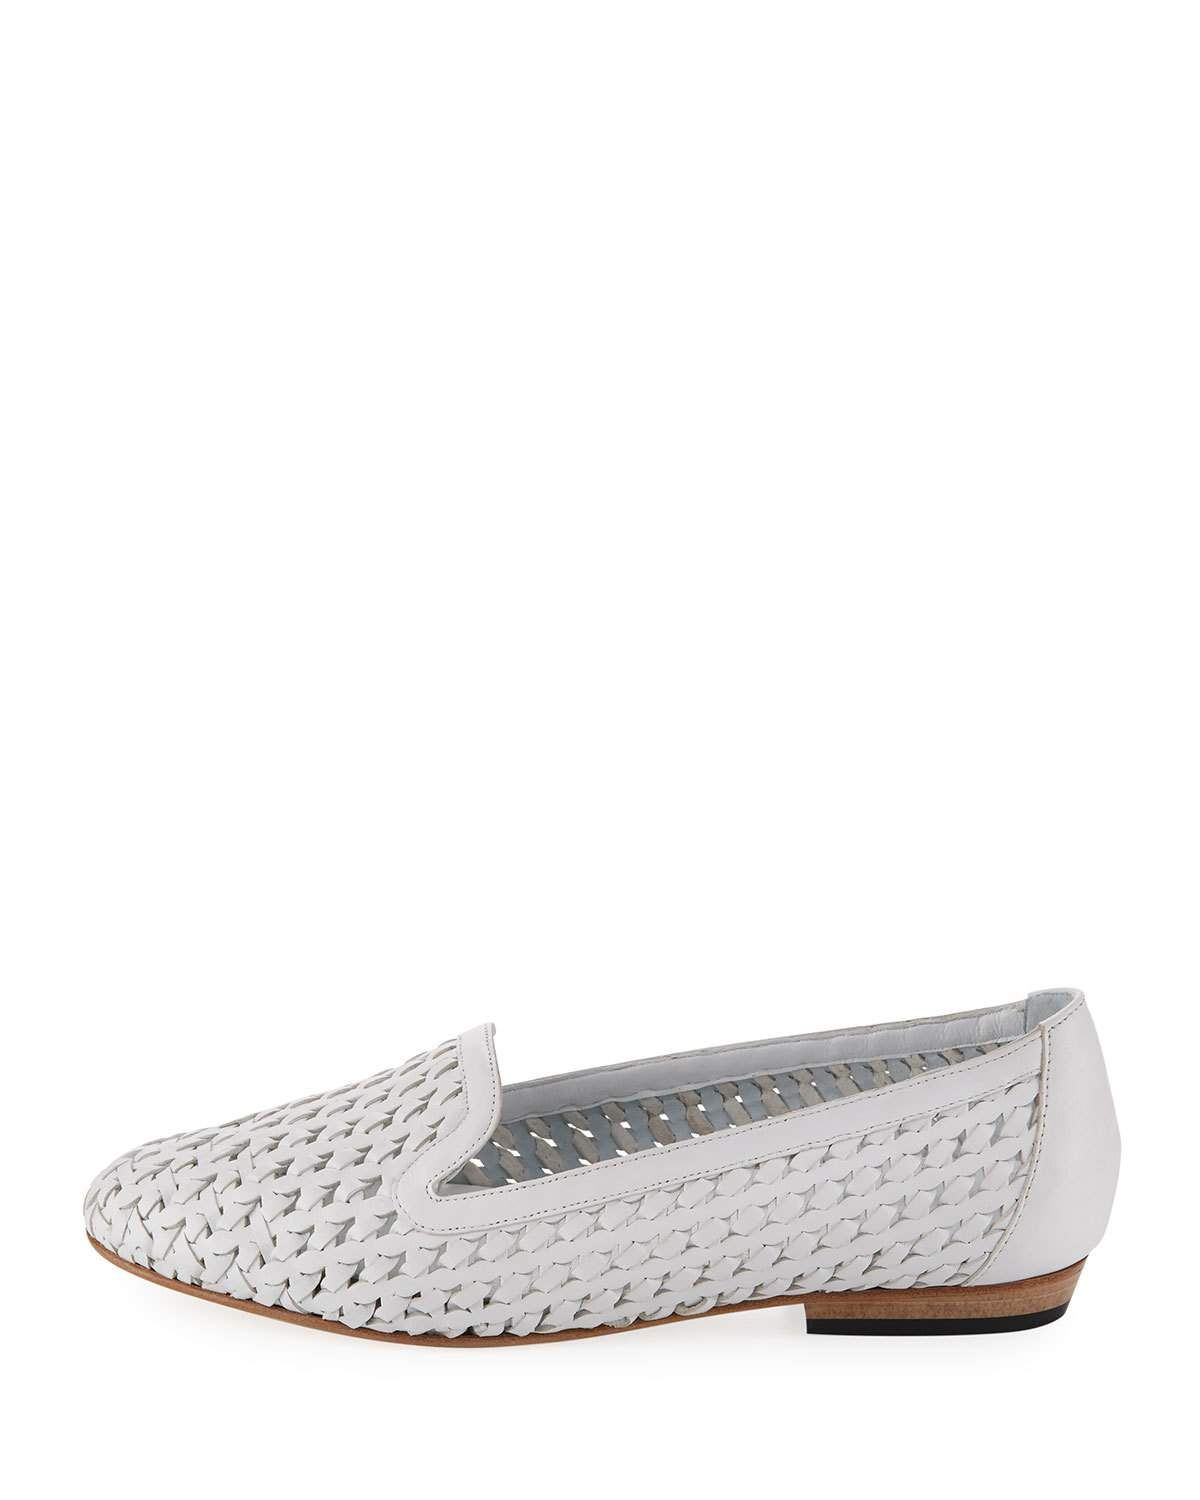 cbeafc96aedb6 Neya Woven Leather Loafer White | Products | Leather loafers ...